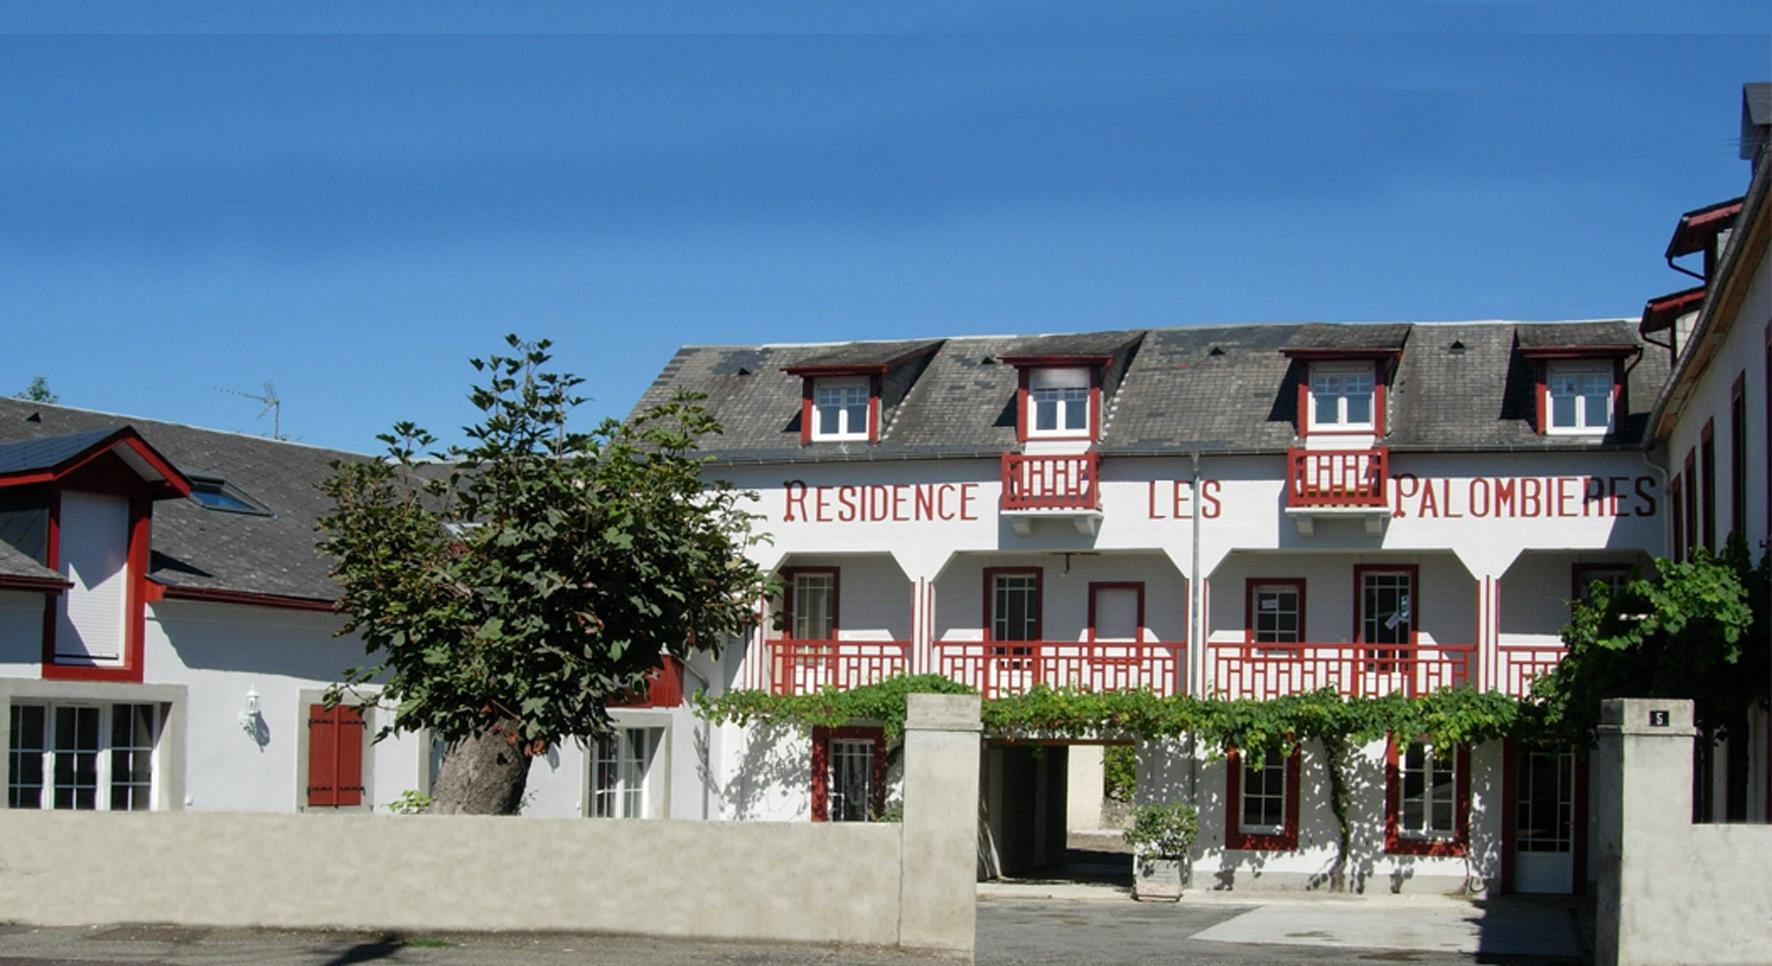 Residence Les Palombieres